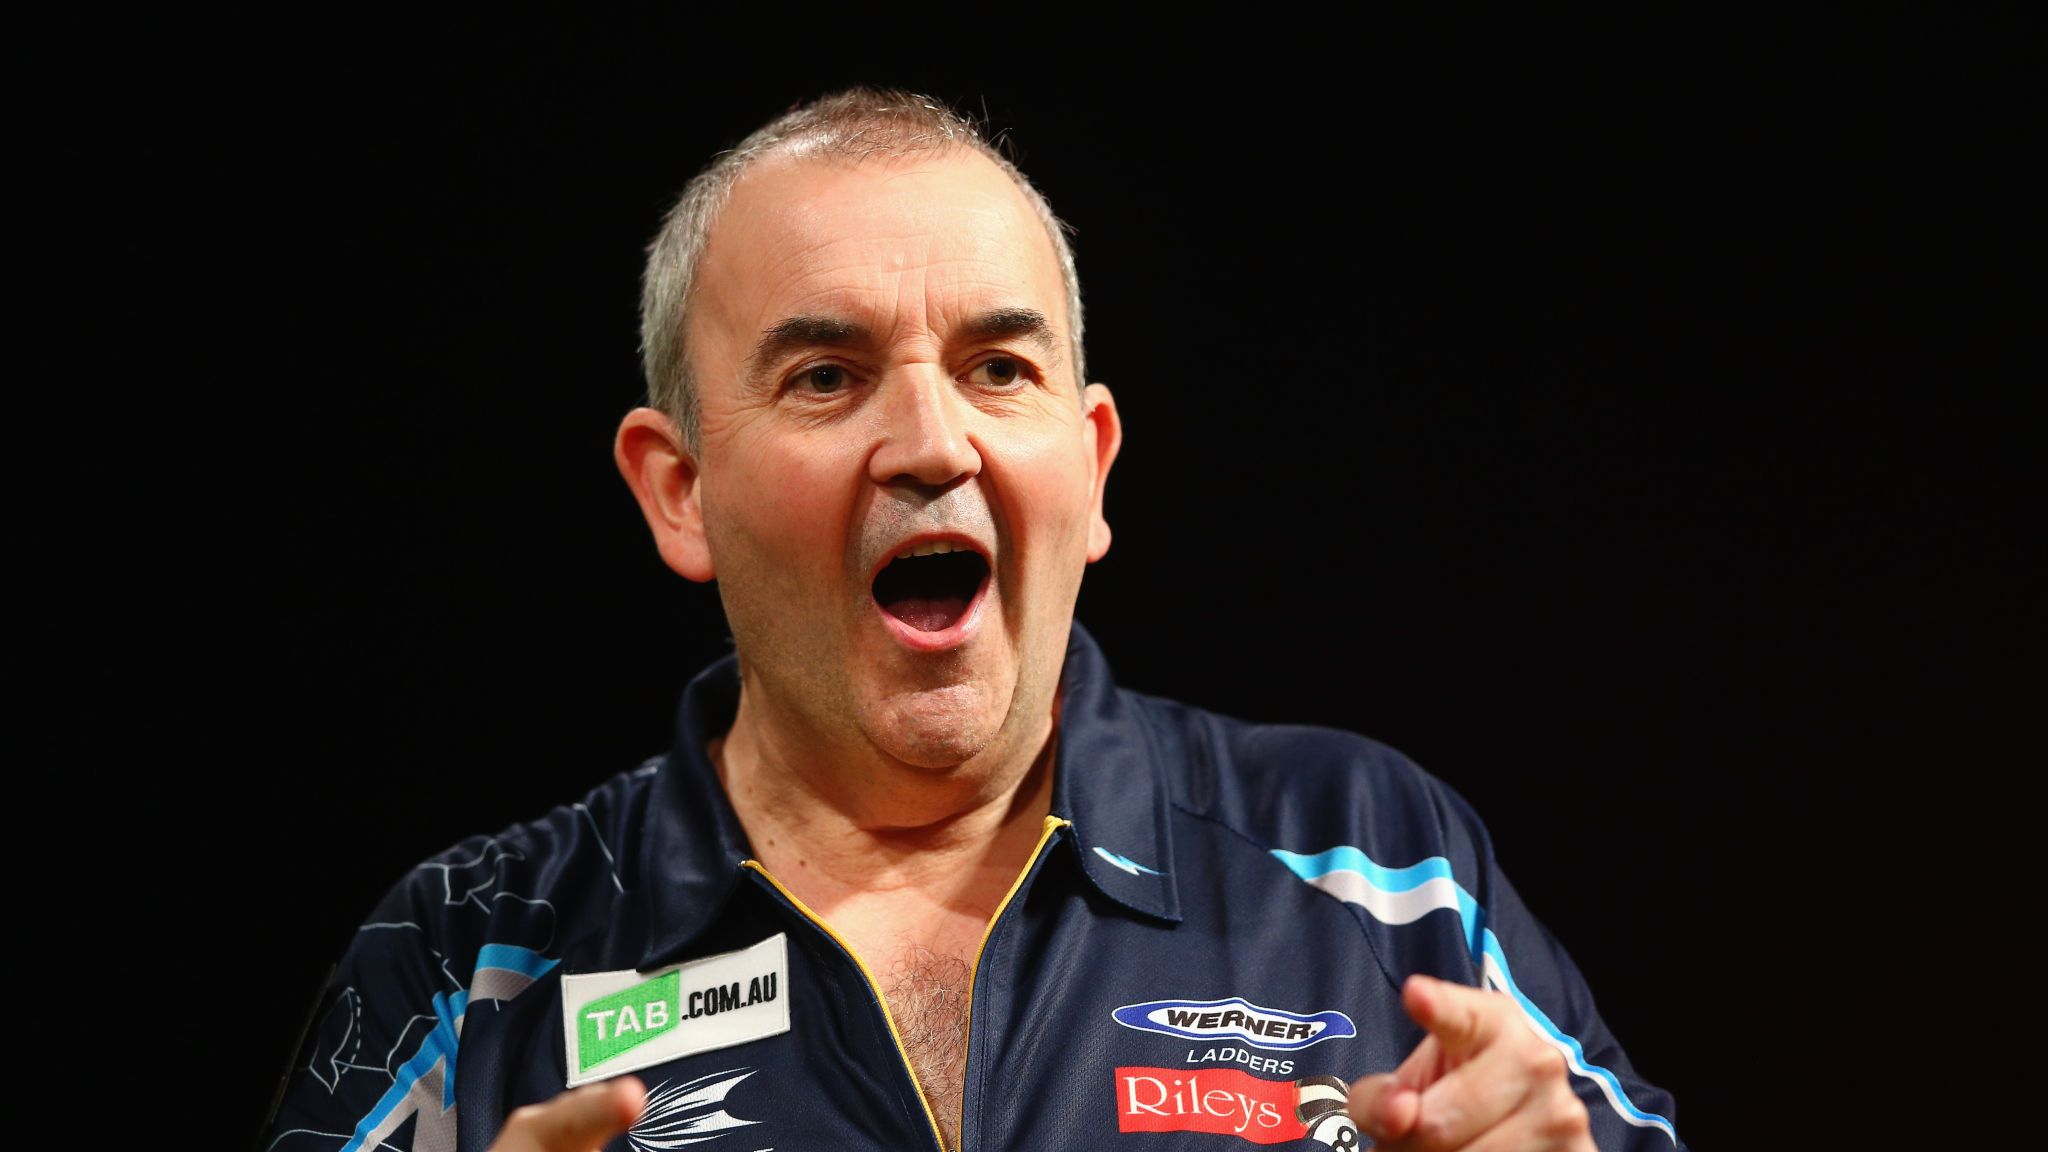 Phil Taylor to slow down in 2015 with retirement planned in 'two or three years'